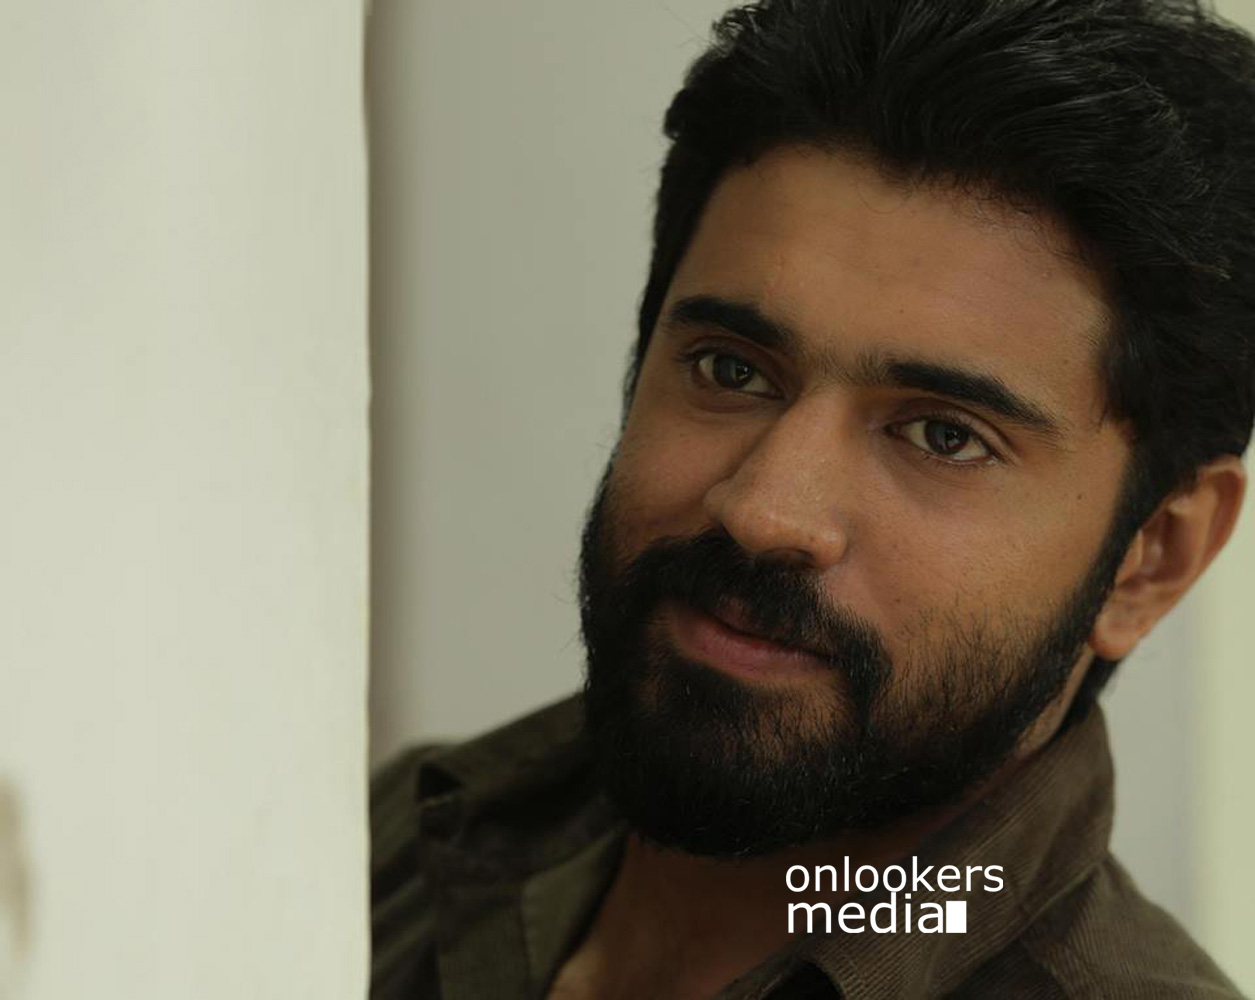 nivin pauly upcoming moviesnivin pauly movies, nivin pauly hairstyle, nivin pauly hit movies, nivin pauly best movies, nivin pauly films, nivin pauly video, nivin pauly, nivin pauly upcoming movies, nivin pauly family, nivin pauly premium, nivin pauly first movie, nivin pauly and nazriya photos, nivin pauly wife, nivin pauly height, nivin pauly son, nivin pauly facebook, nivin pauly new movie, nivin pauly images, nivin pauly salary, nivin pauly songs